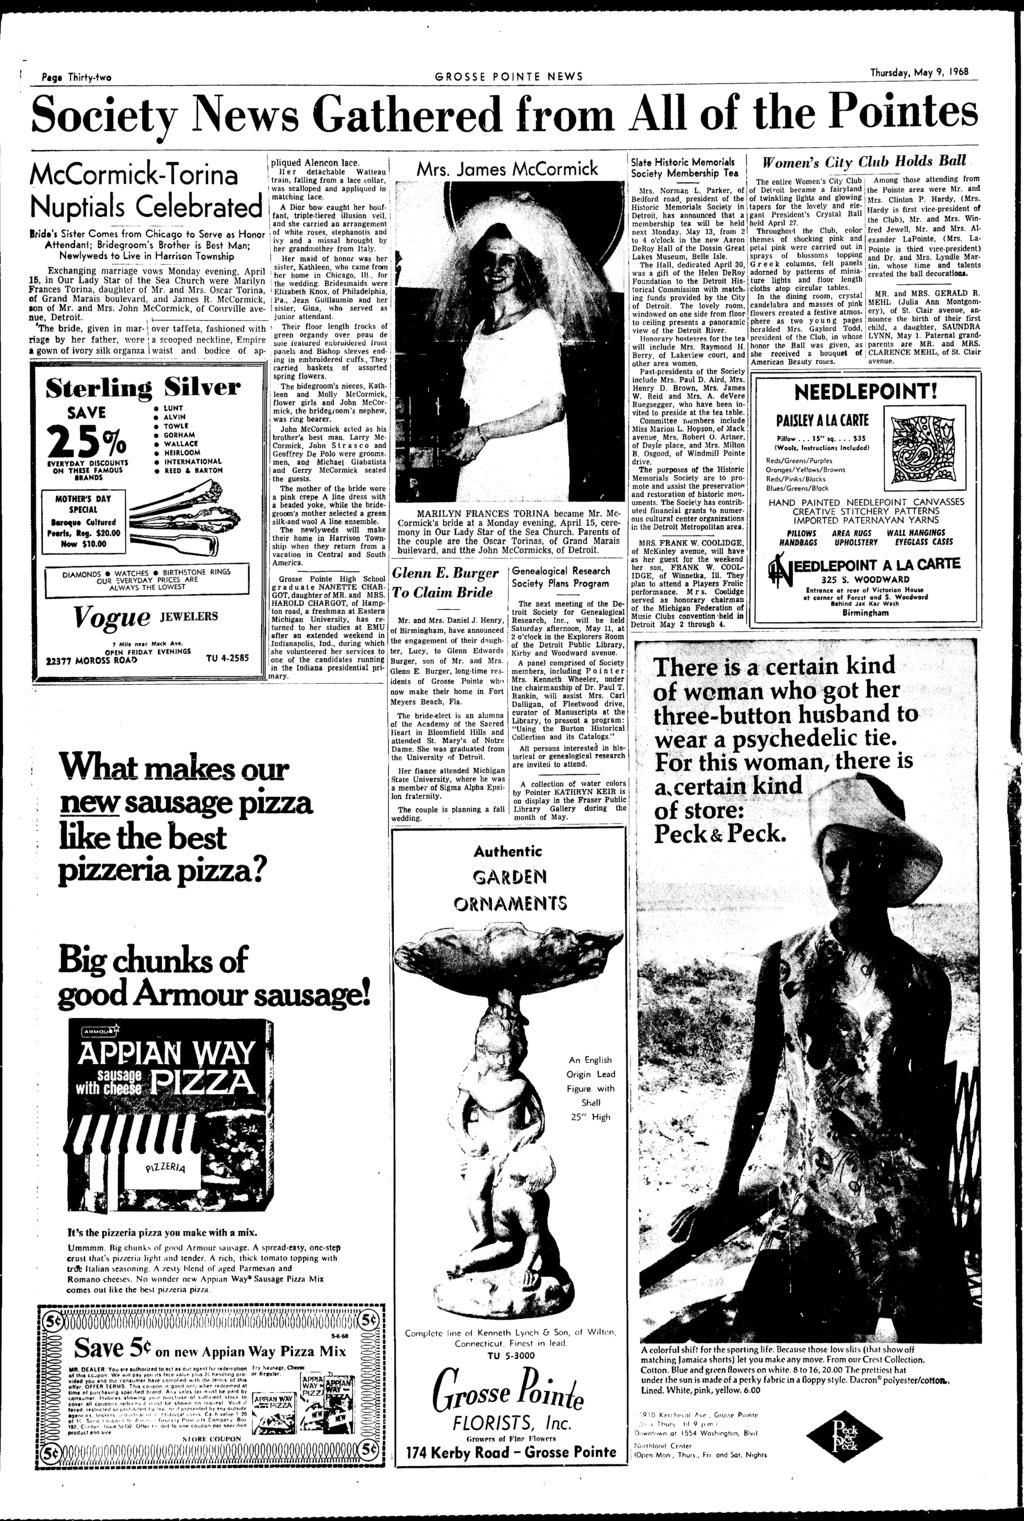 Rossepointe Complete News Coverage Of All The Pointes Grosse Spoon Fork Ub 2 Blue Diamond Sprays Pig Thirtytwo Ponte Thursday May 9 1968